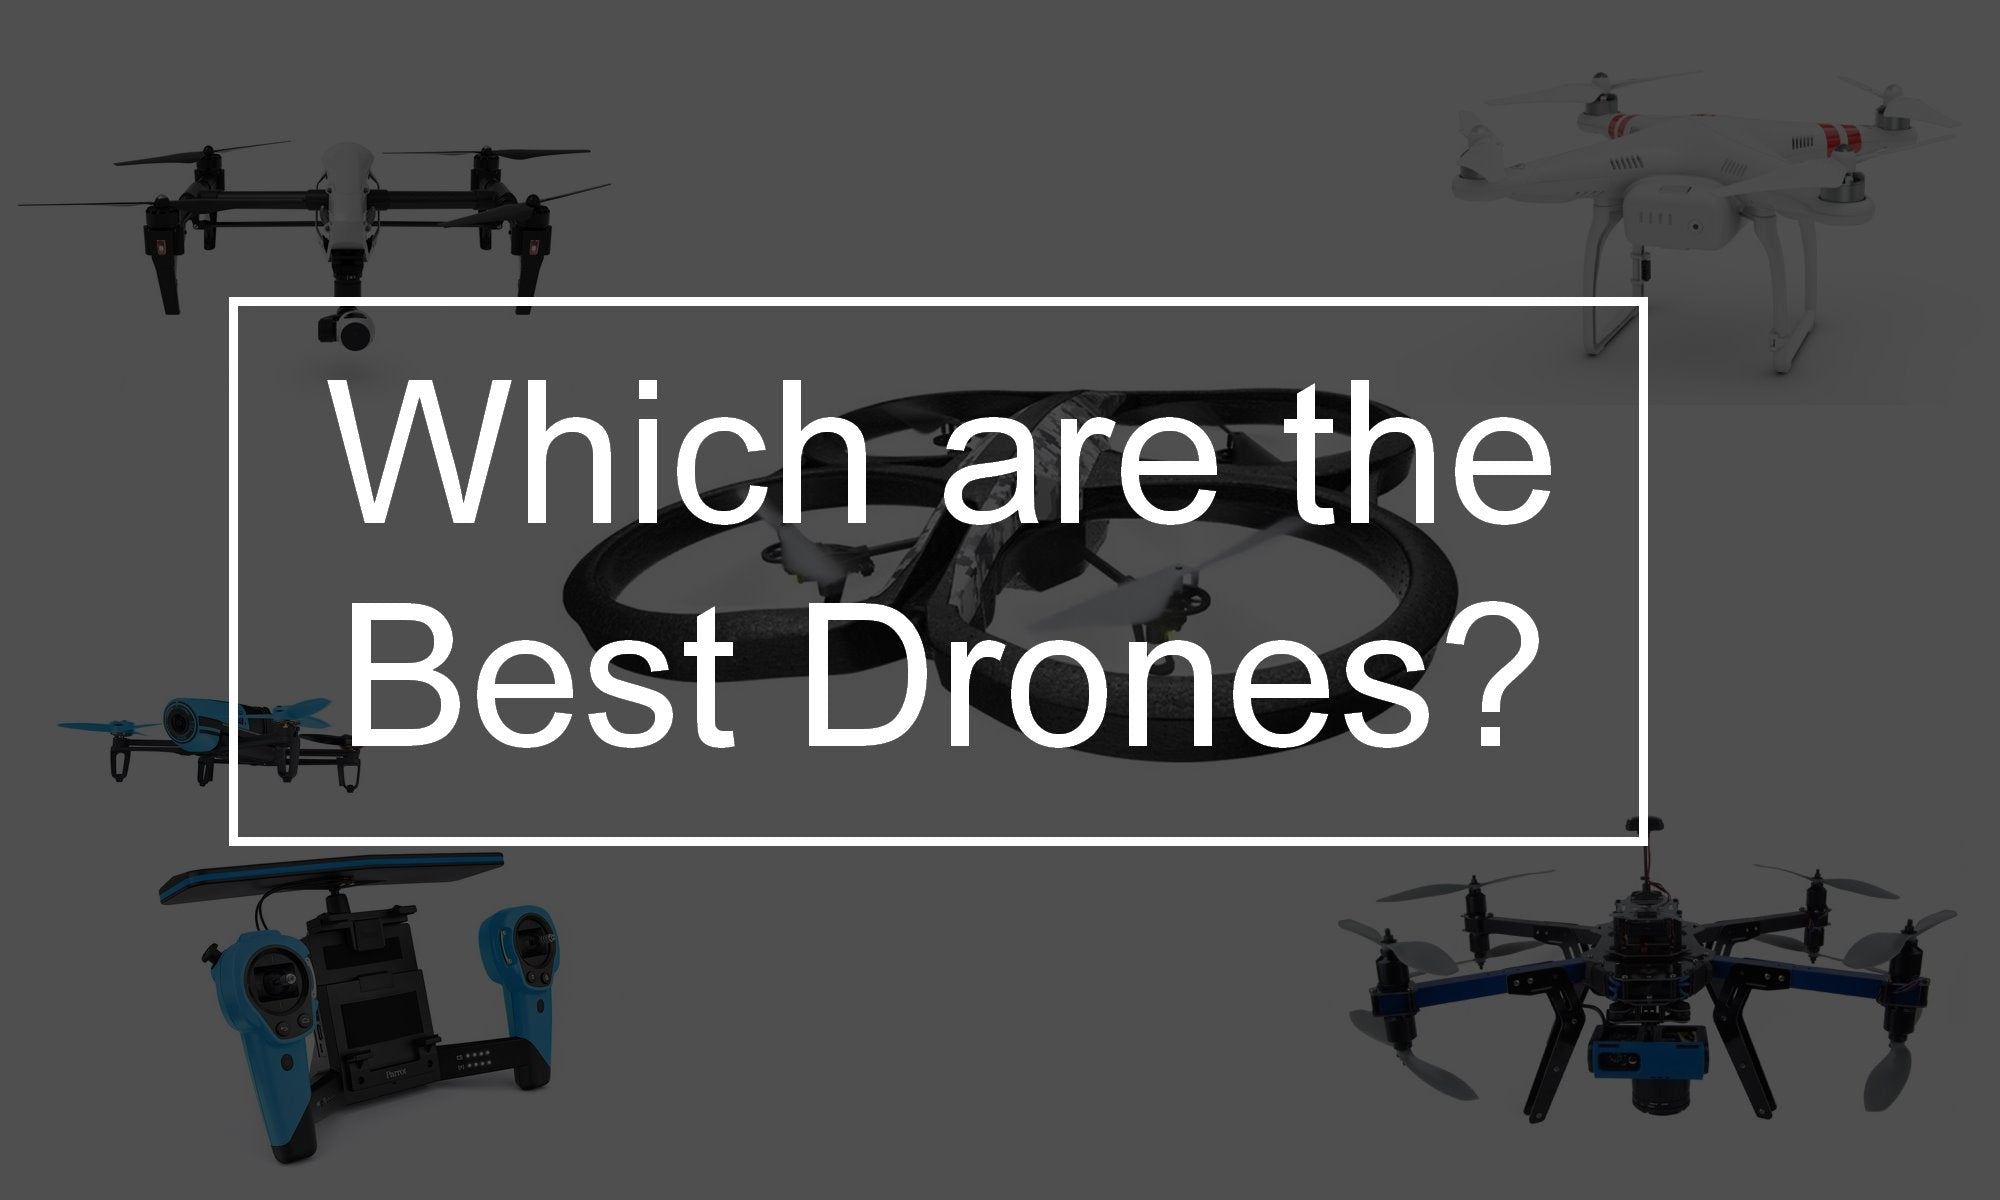 Which are the best Drones?